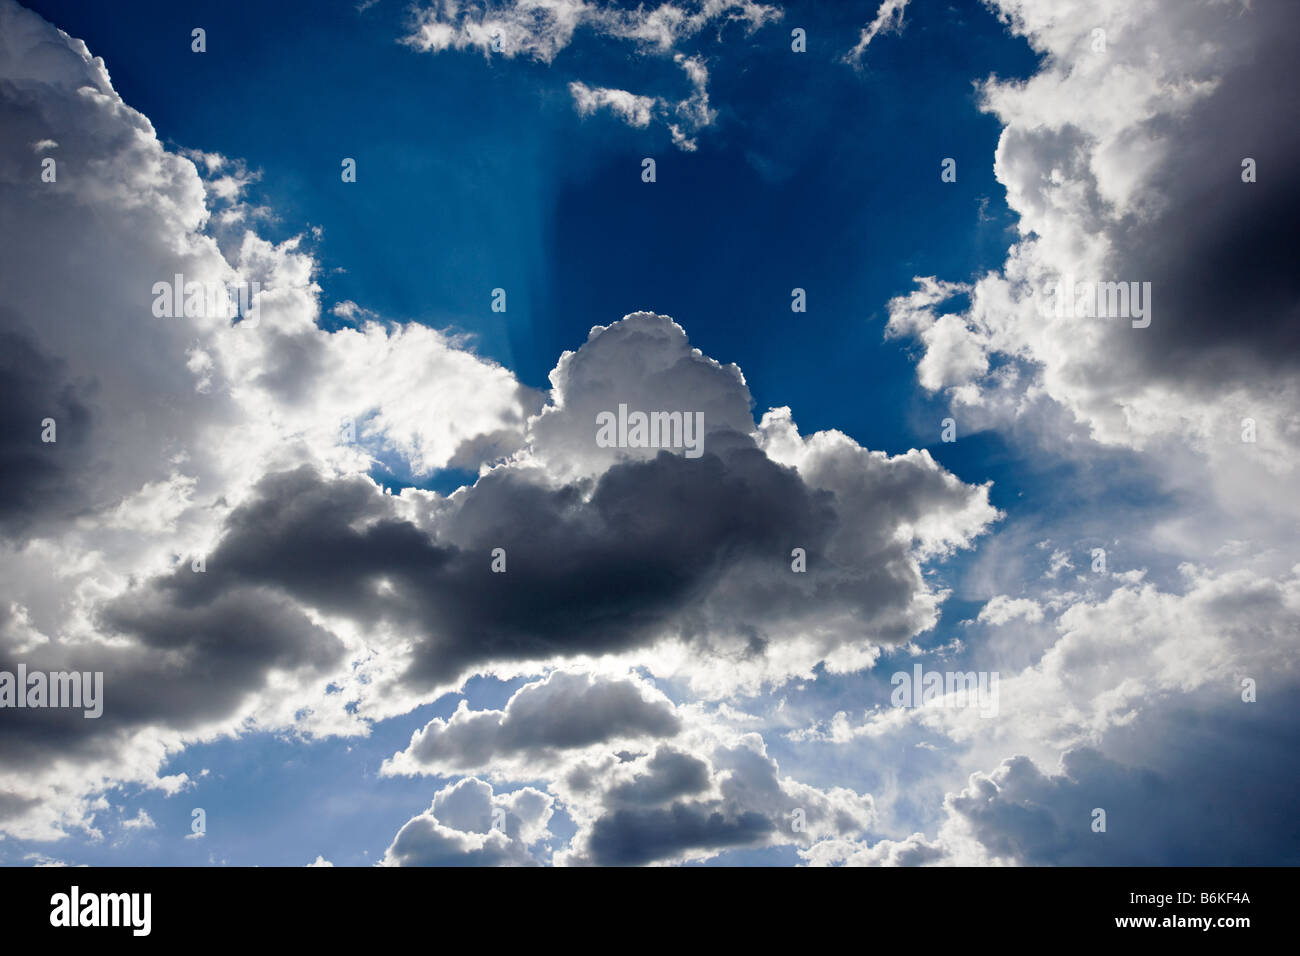 Dramatic clouds in blue sky - Stock Image